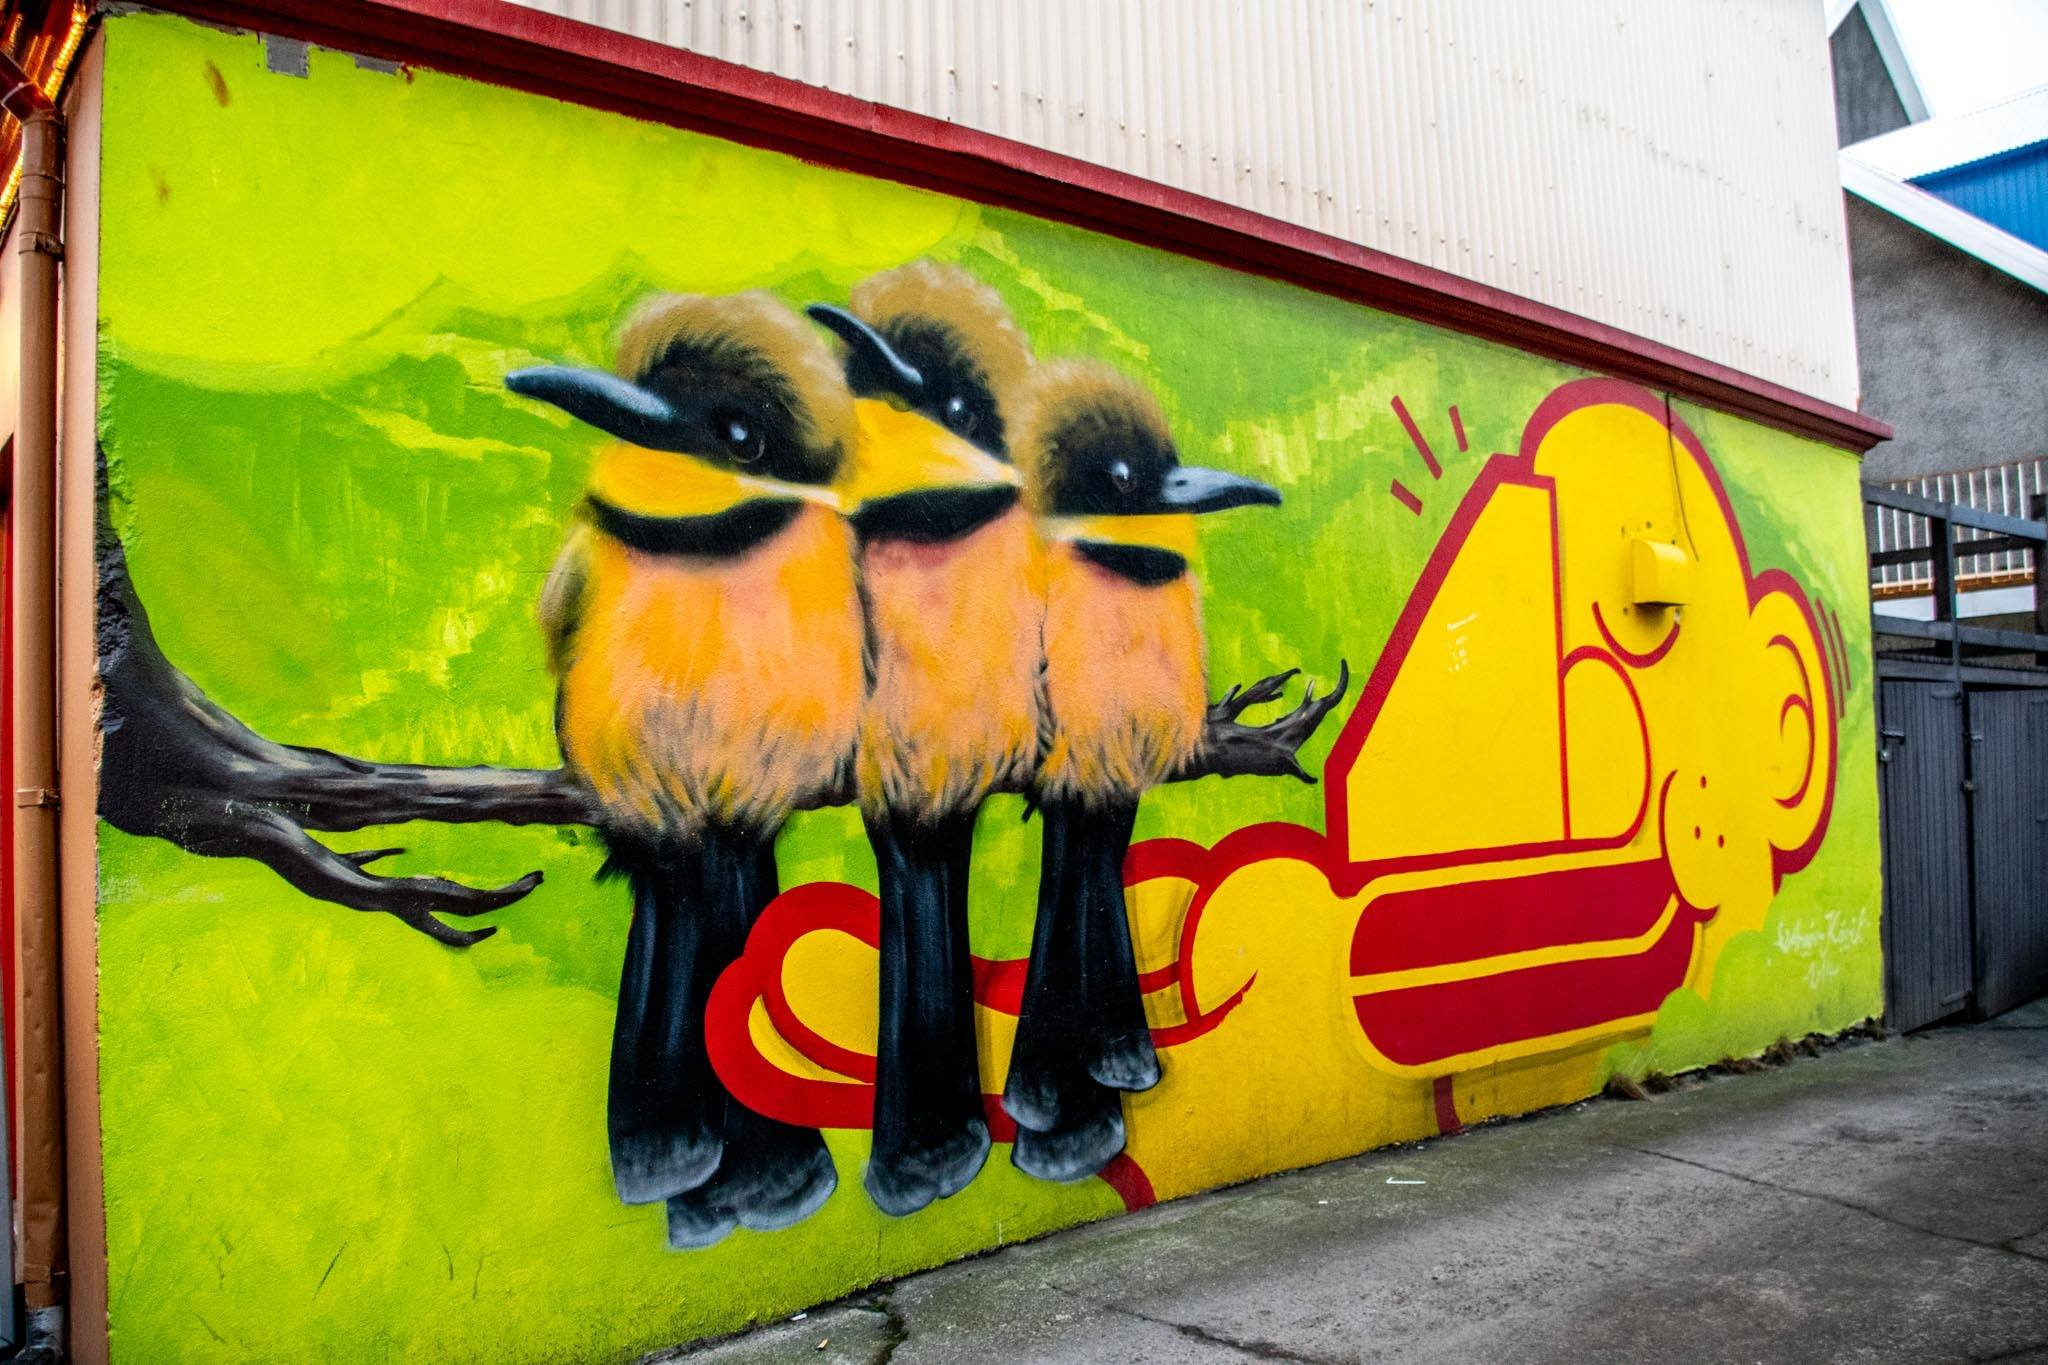 Three birds wall mural is an example of Iceland street art